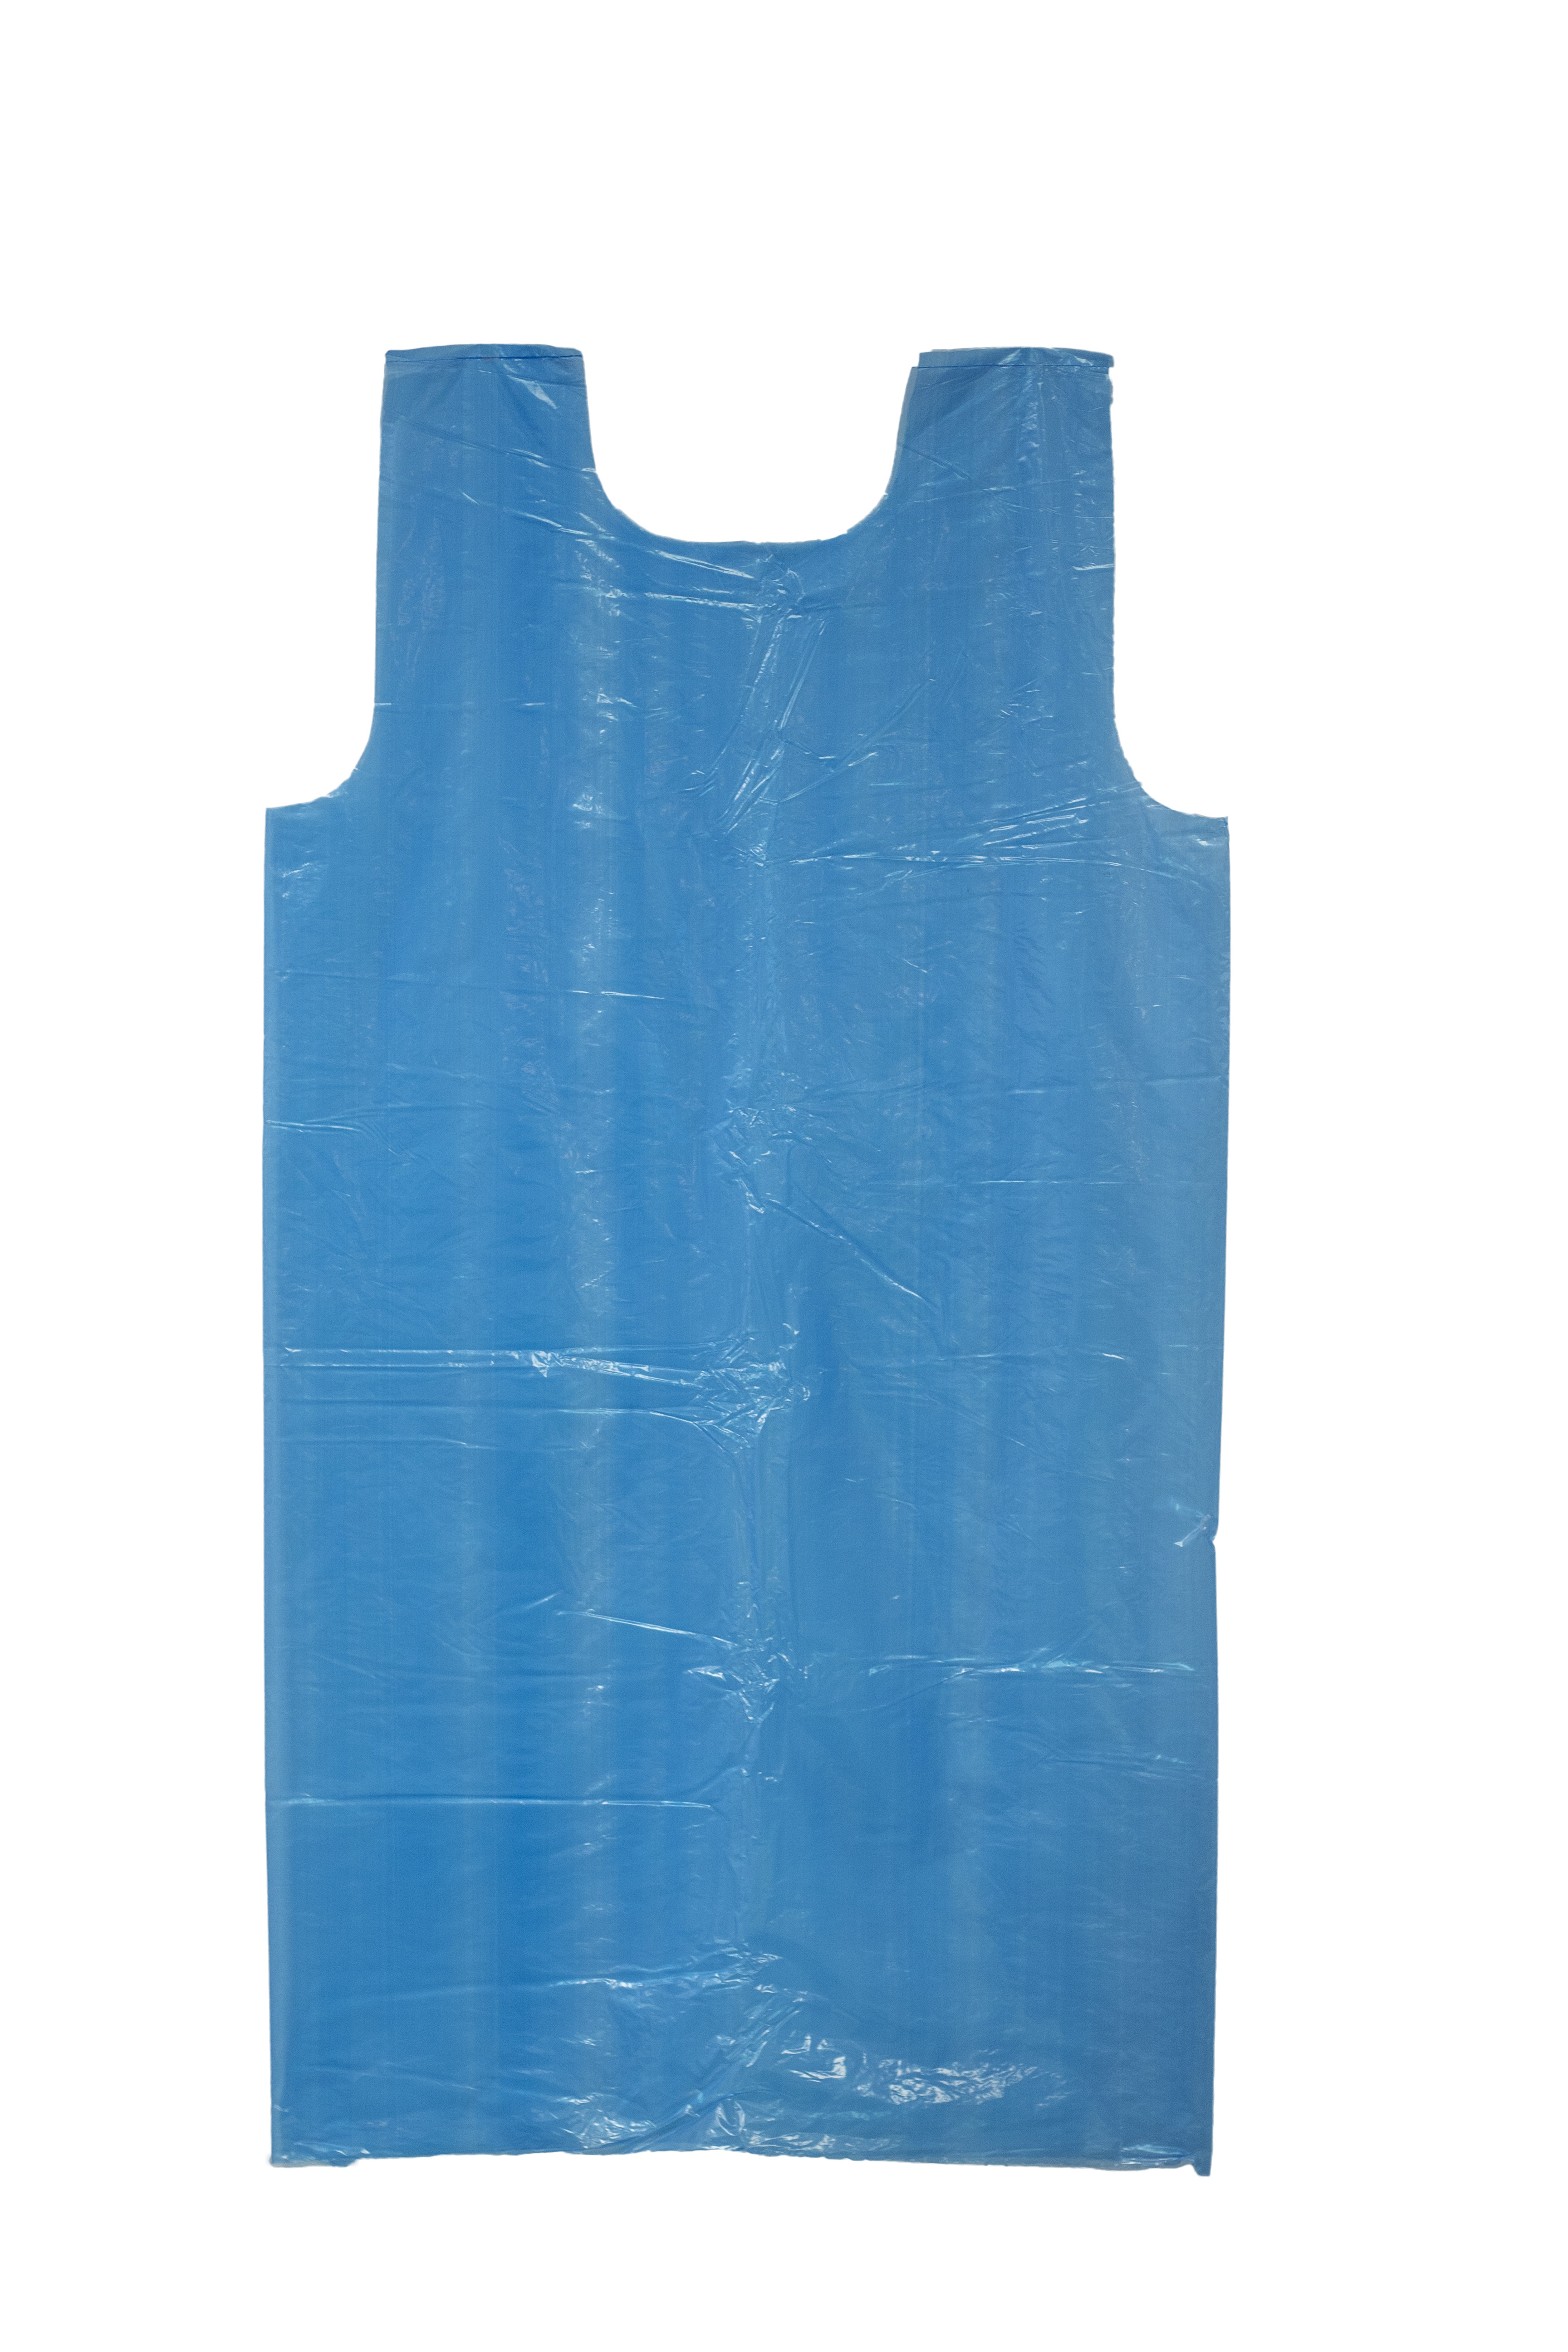 8570_blue_disposable_smock